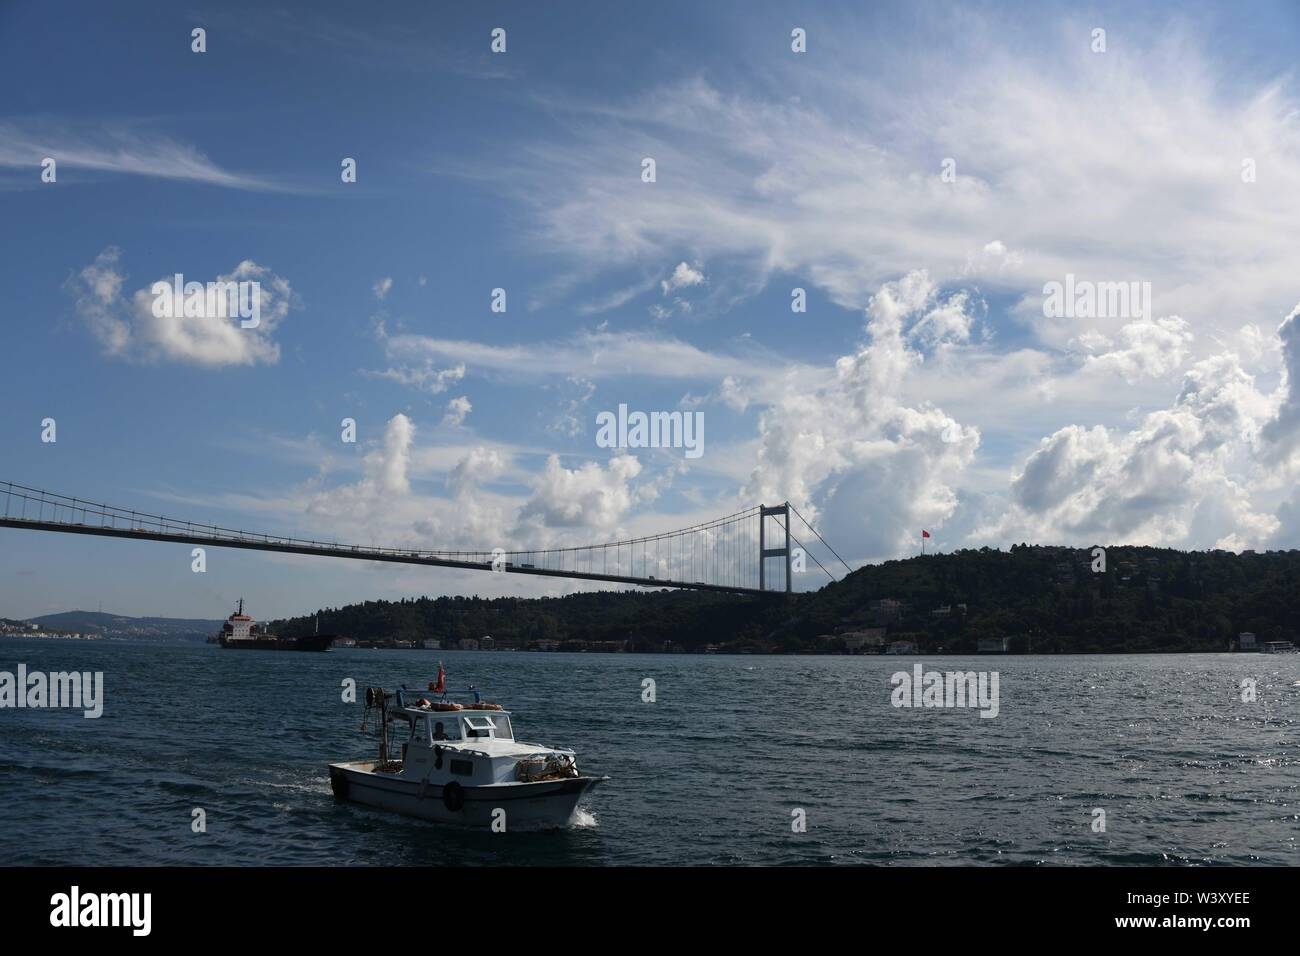 Istanbul. 18th July, 2019. Photo taken on July 18, 2019 shows a scenery of the Bosphorus strait in Istanbul, Turkey. Turkey's biggest city Istanbul allured a record number of tourists during the first five months of this year, thanks to an environment of peace, affordable prices and diversified tourism products. Between January and May, 5.4 million foreigners visited Istanbul, marking a year-on-year increase of 11 percent, according to the data unveiled by the Istanbul Provincial Directorate of Culture and Tourism. Credit: Xu Suhui/Xinhua/Alamy Live News - Stock Image